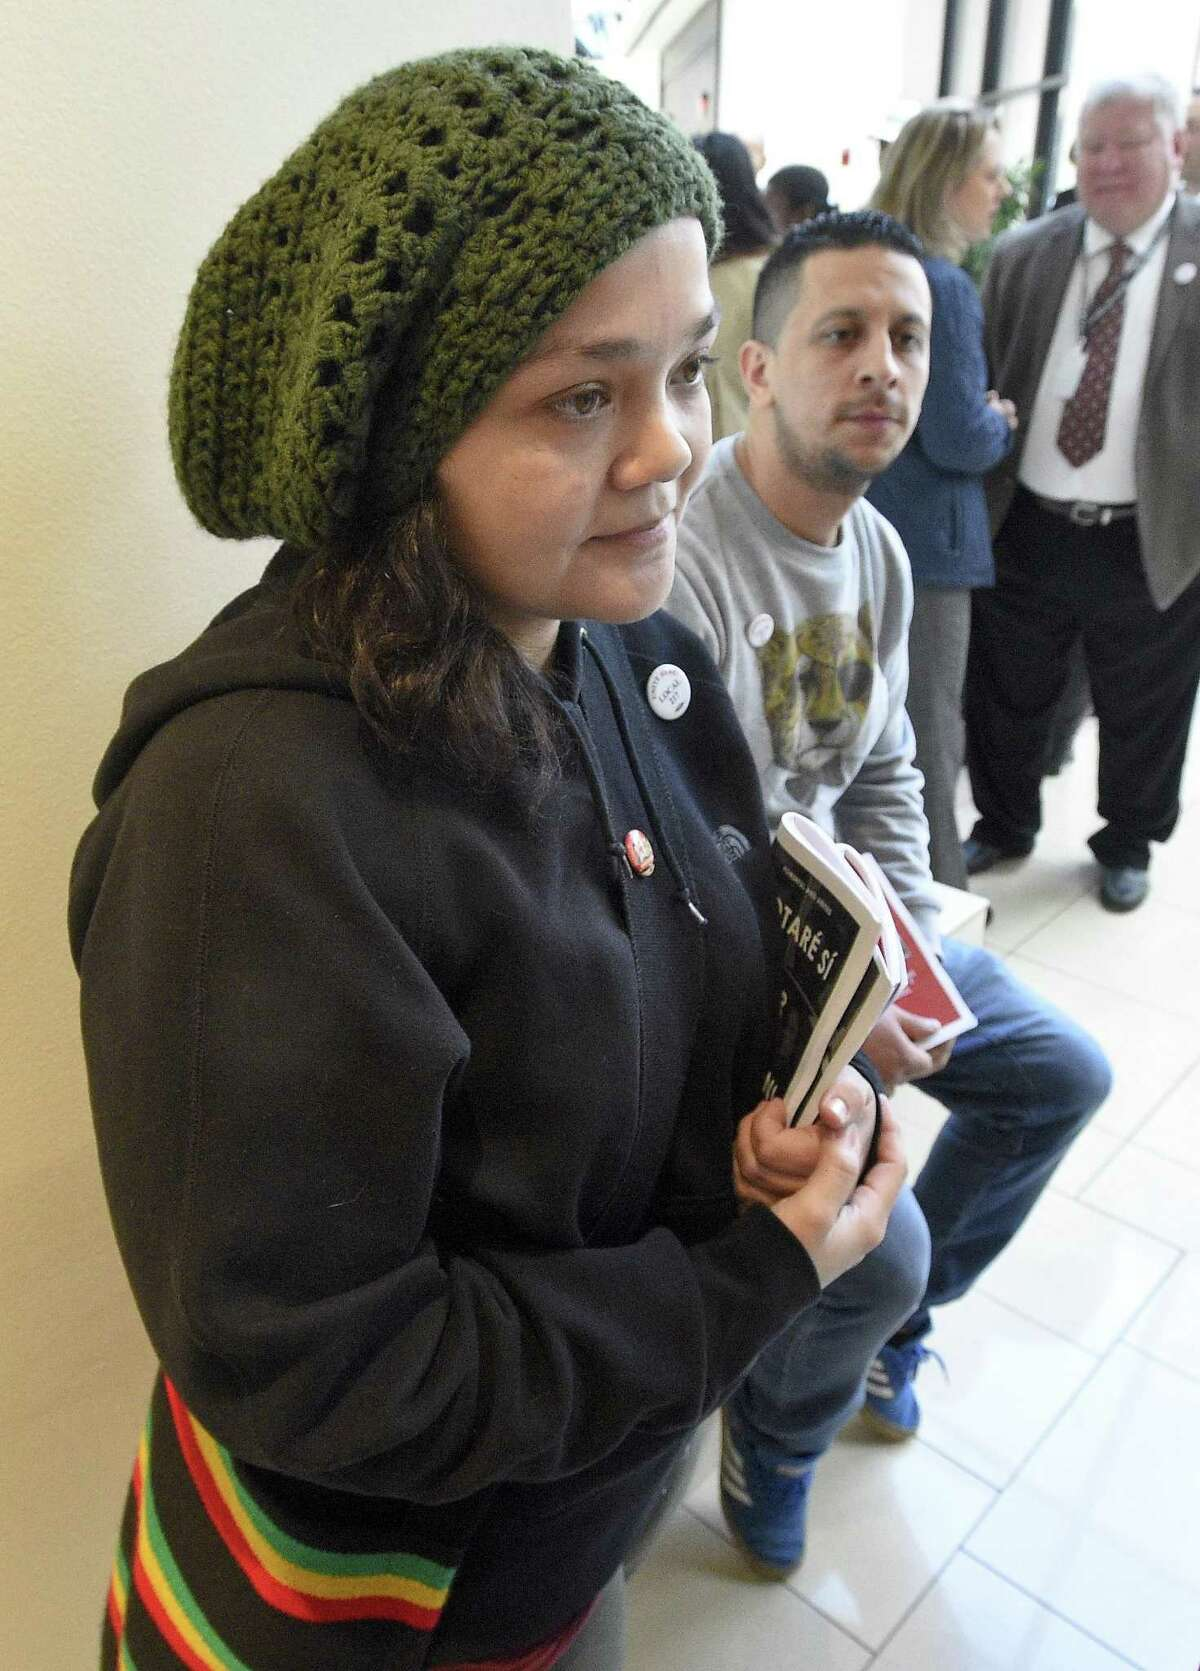 Lupe Martinez of Stamford talks with the media following a rally at the Hilton Stamford Hotel & Executive Meeting Center on Friday, Dec. 1, 2017 in Stamford, Connecticut. Martinez, who works as a Banquet Server and husband Irwin Martinez, a cook, joined with co-workers, city and state officials in support of employees unionizing and will vote Monday on whether to join UNITE HERE Local 217.